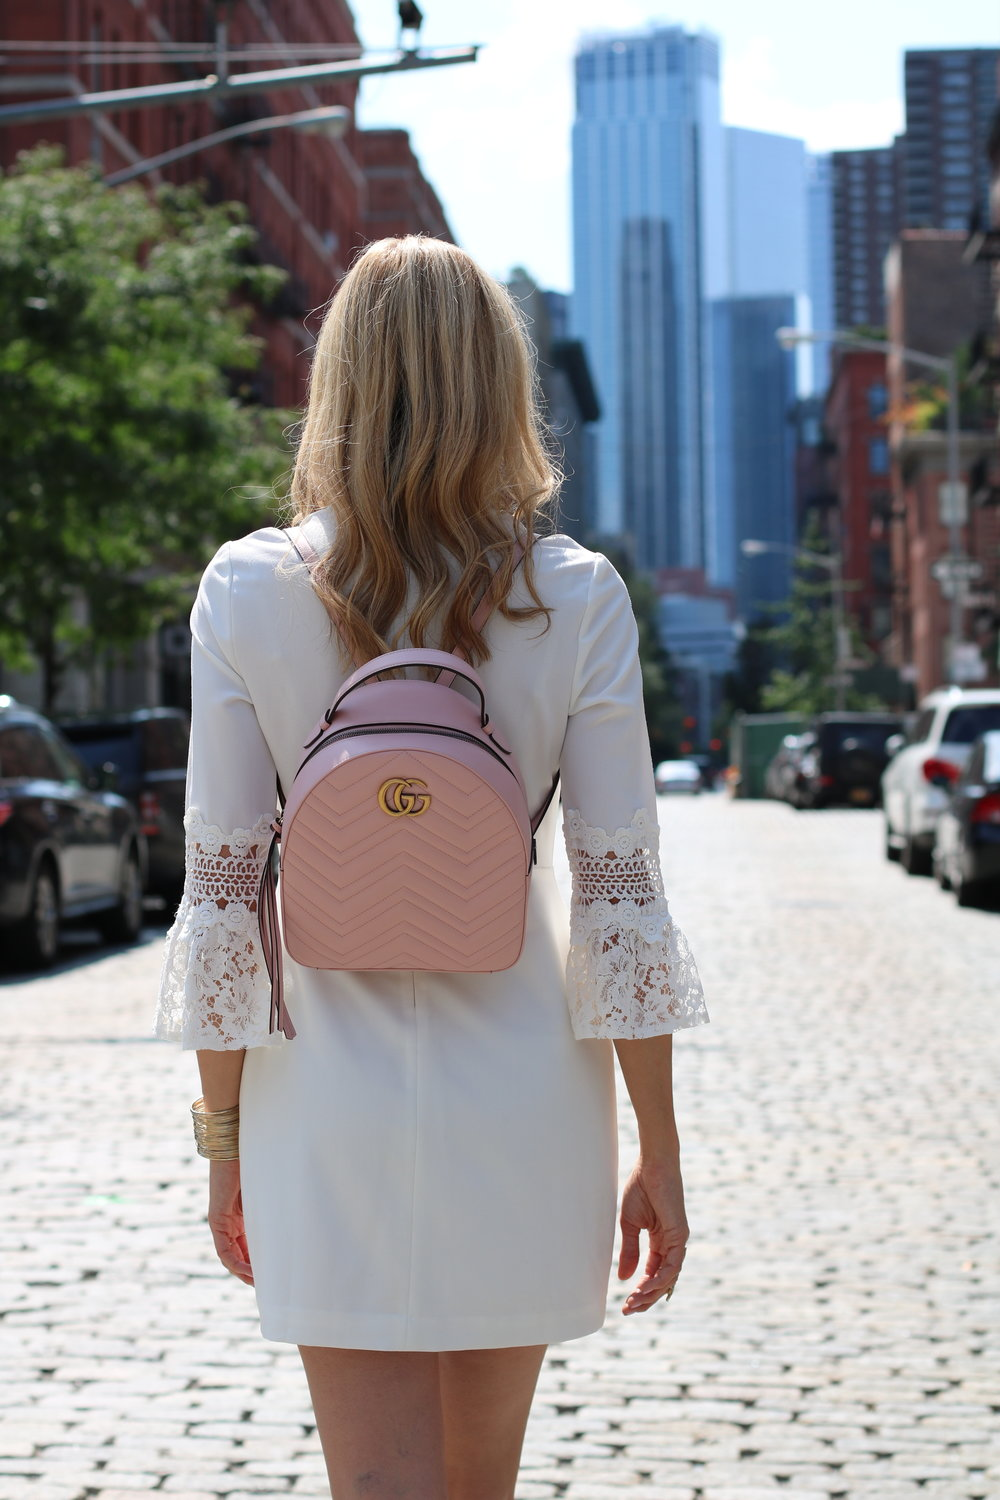 gucci-marmont-pink-blush-backpack1.jpg